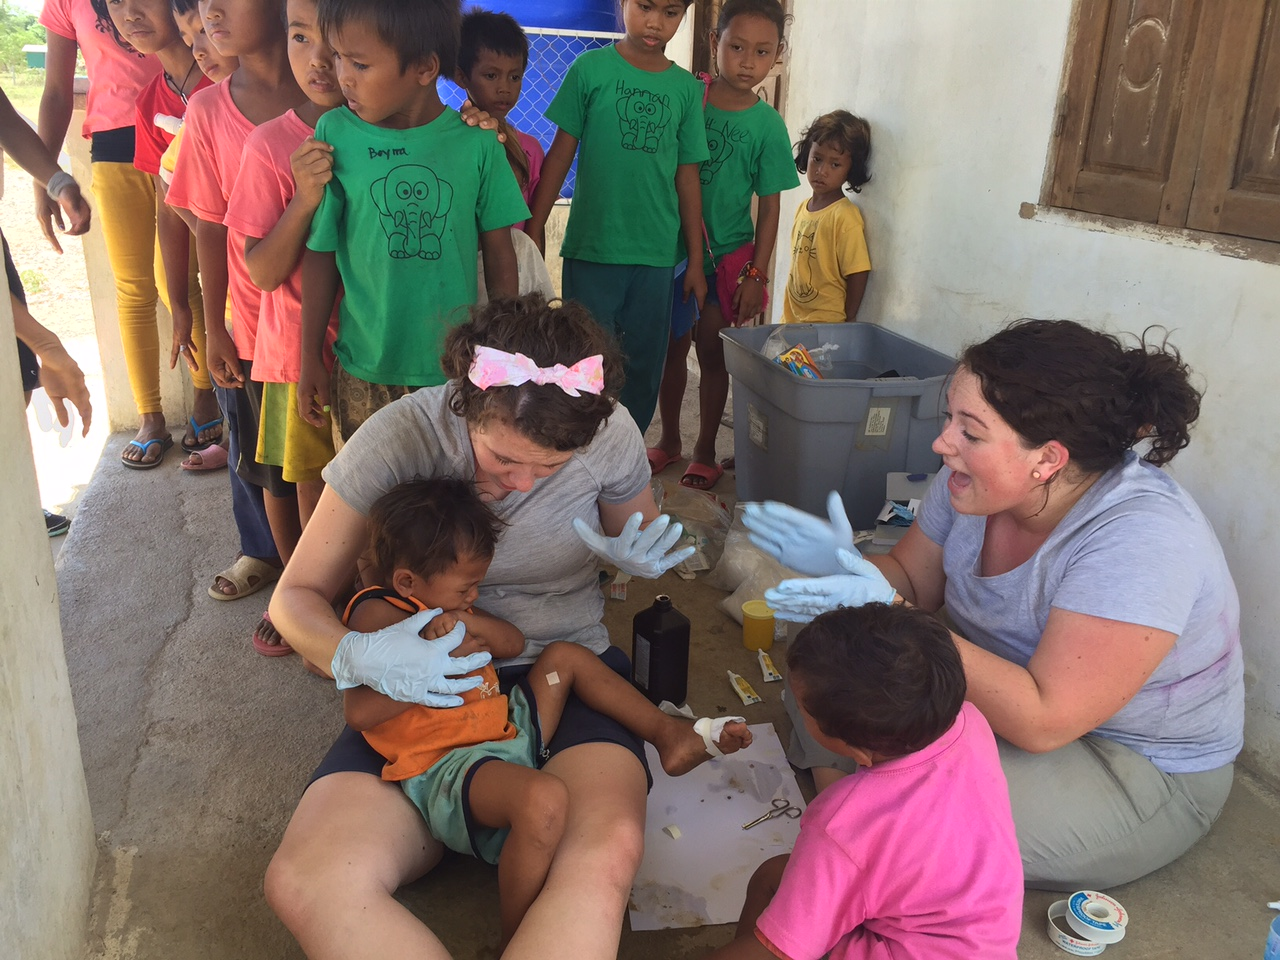 Madeline & Molly treating kids at our makeshift medical clinic.